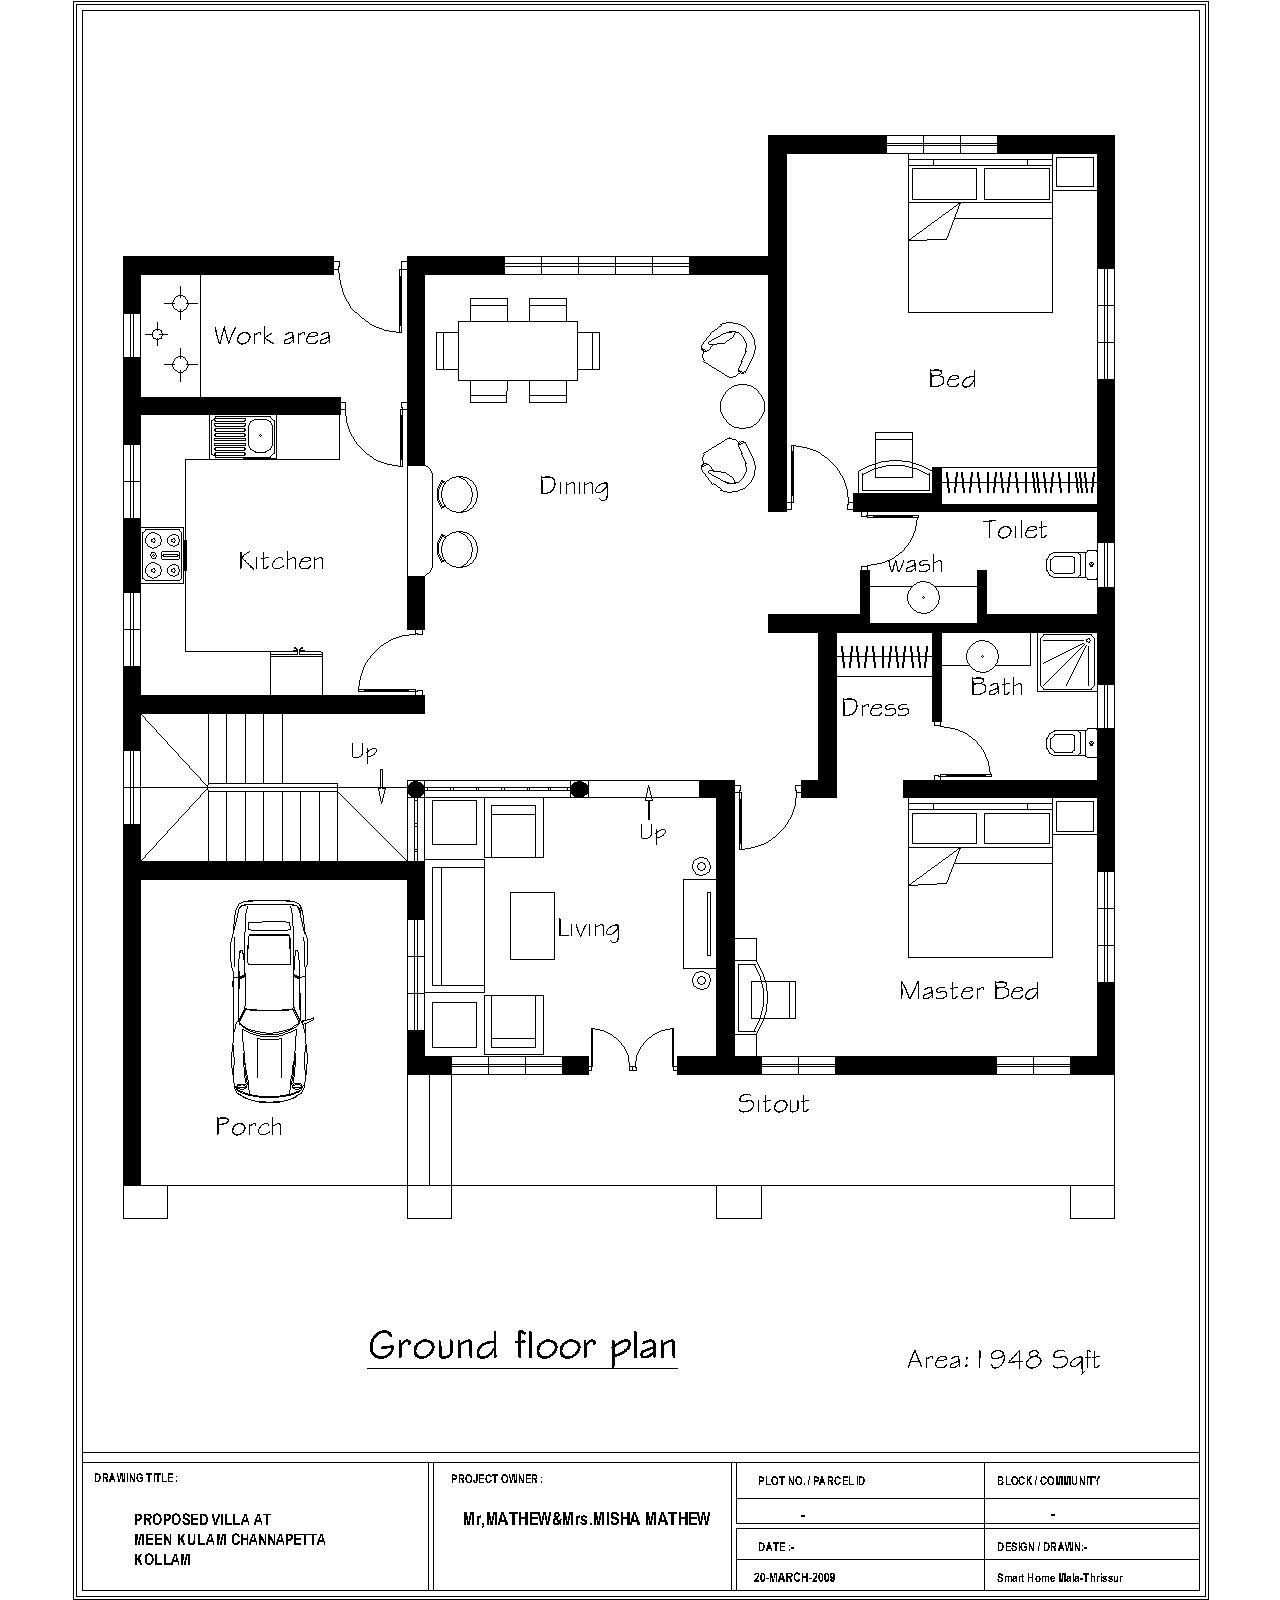 Bedroom floor plans bedroom furniture high resolution Ground floor 3 bedroom plans